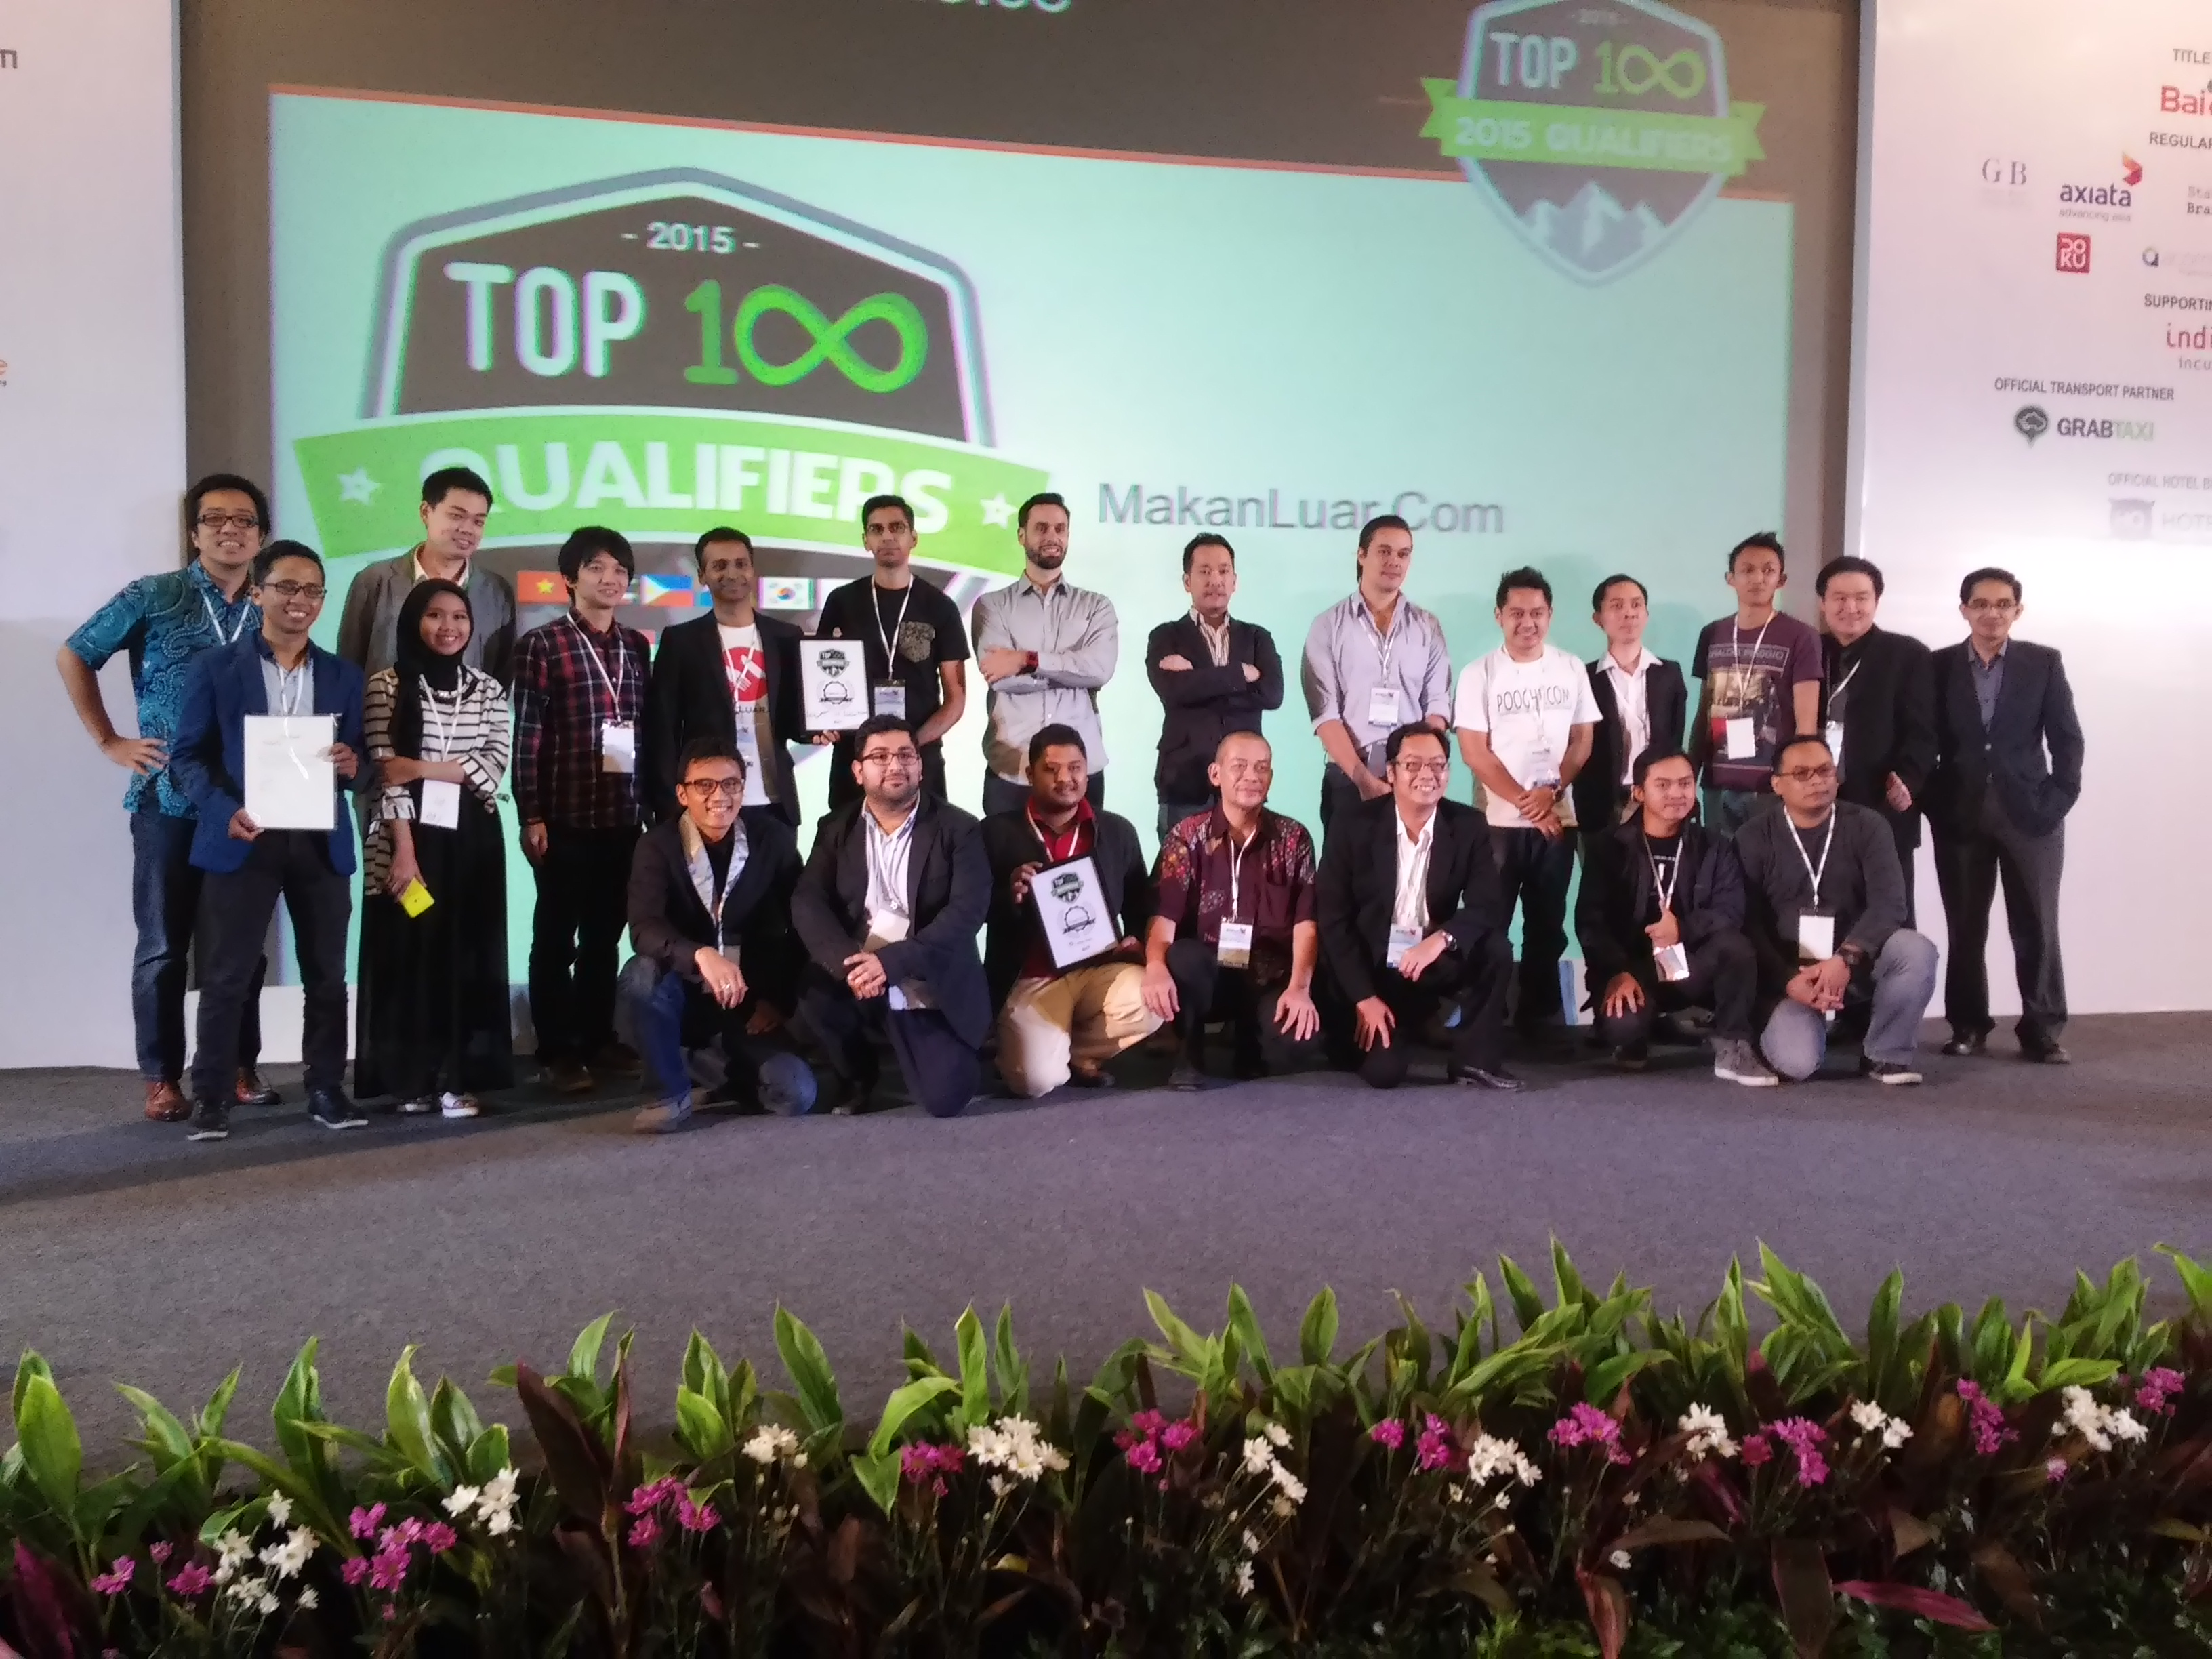 Peserta dan pemenang program Top 100 Indonesia Qualifier / DailySocial